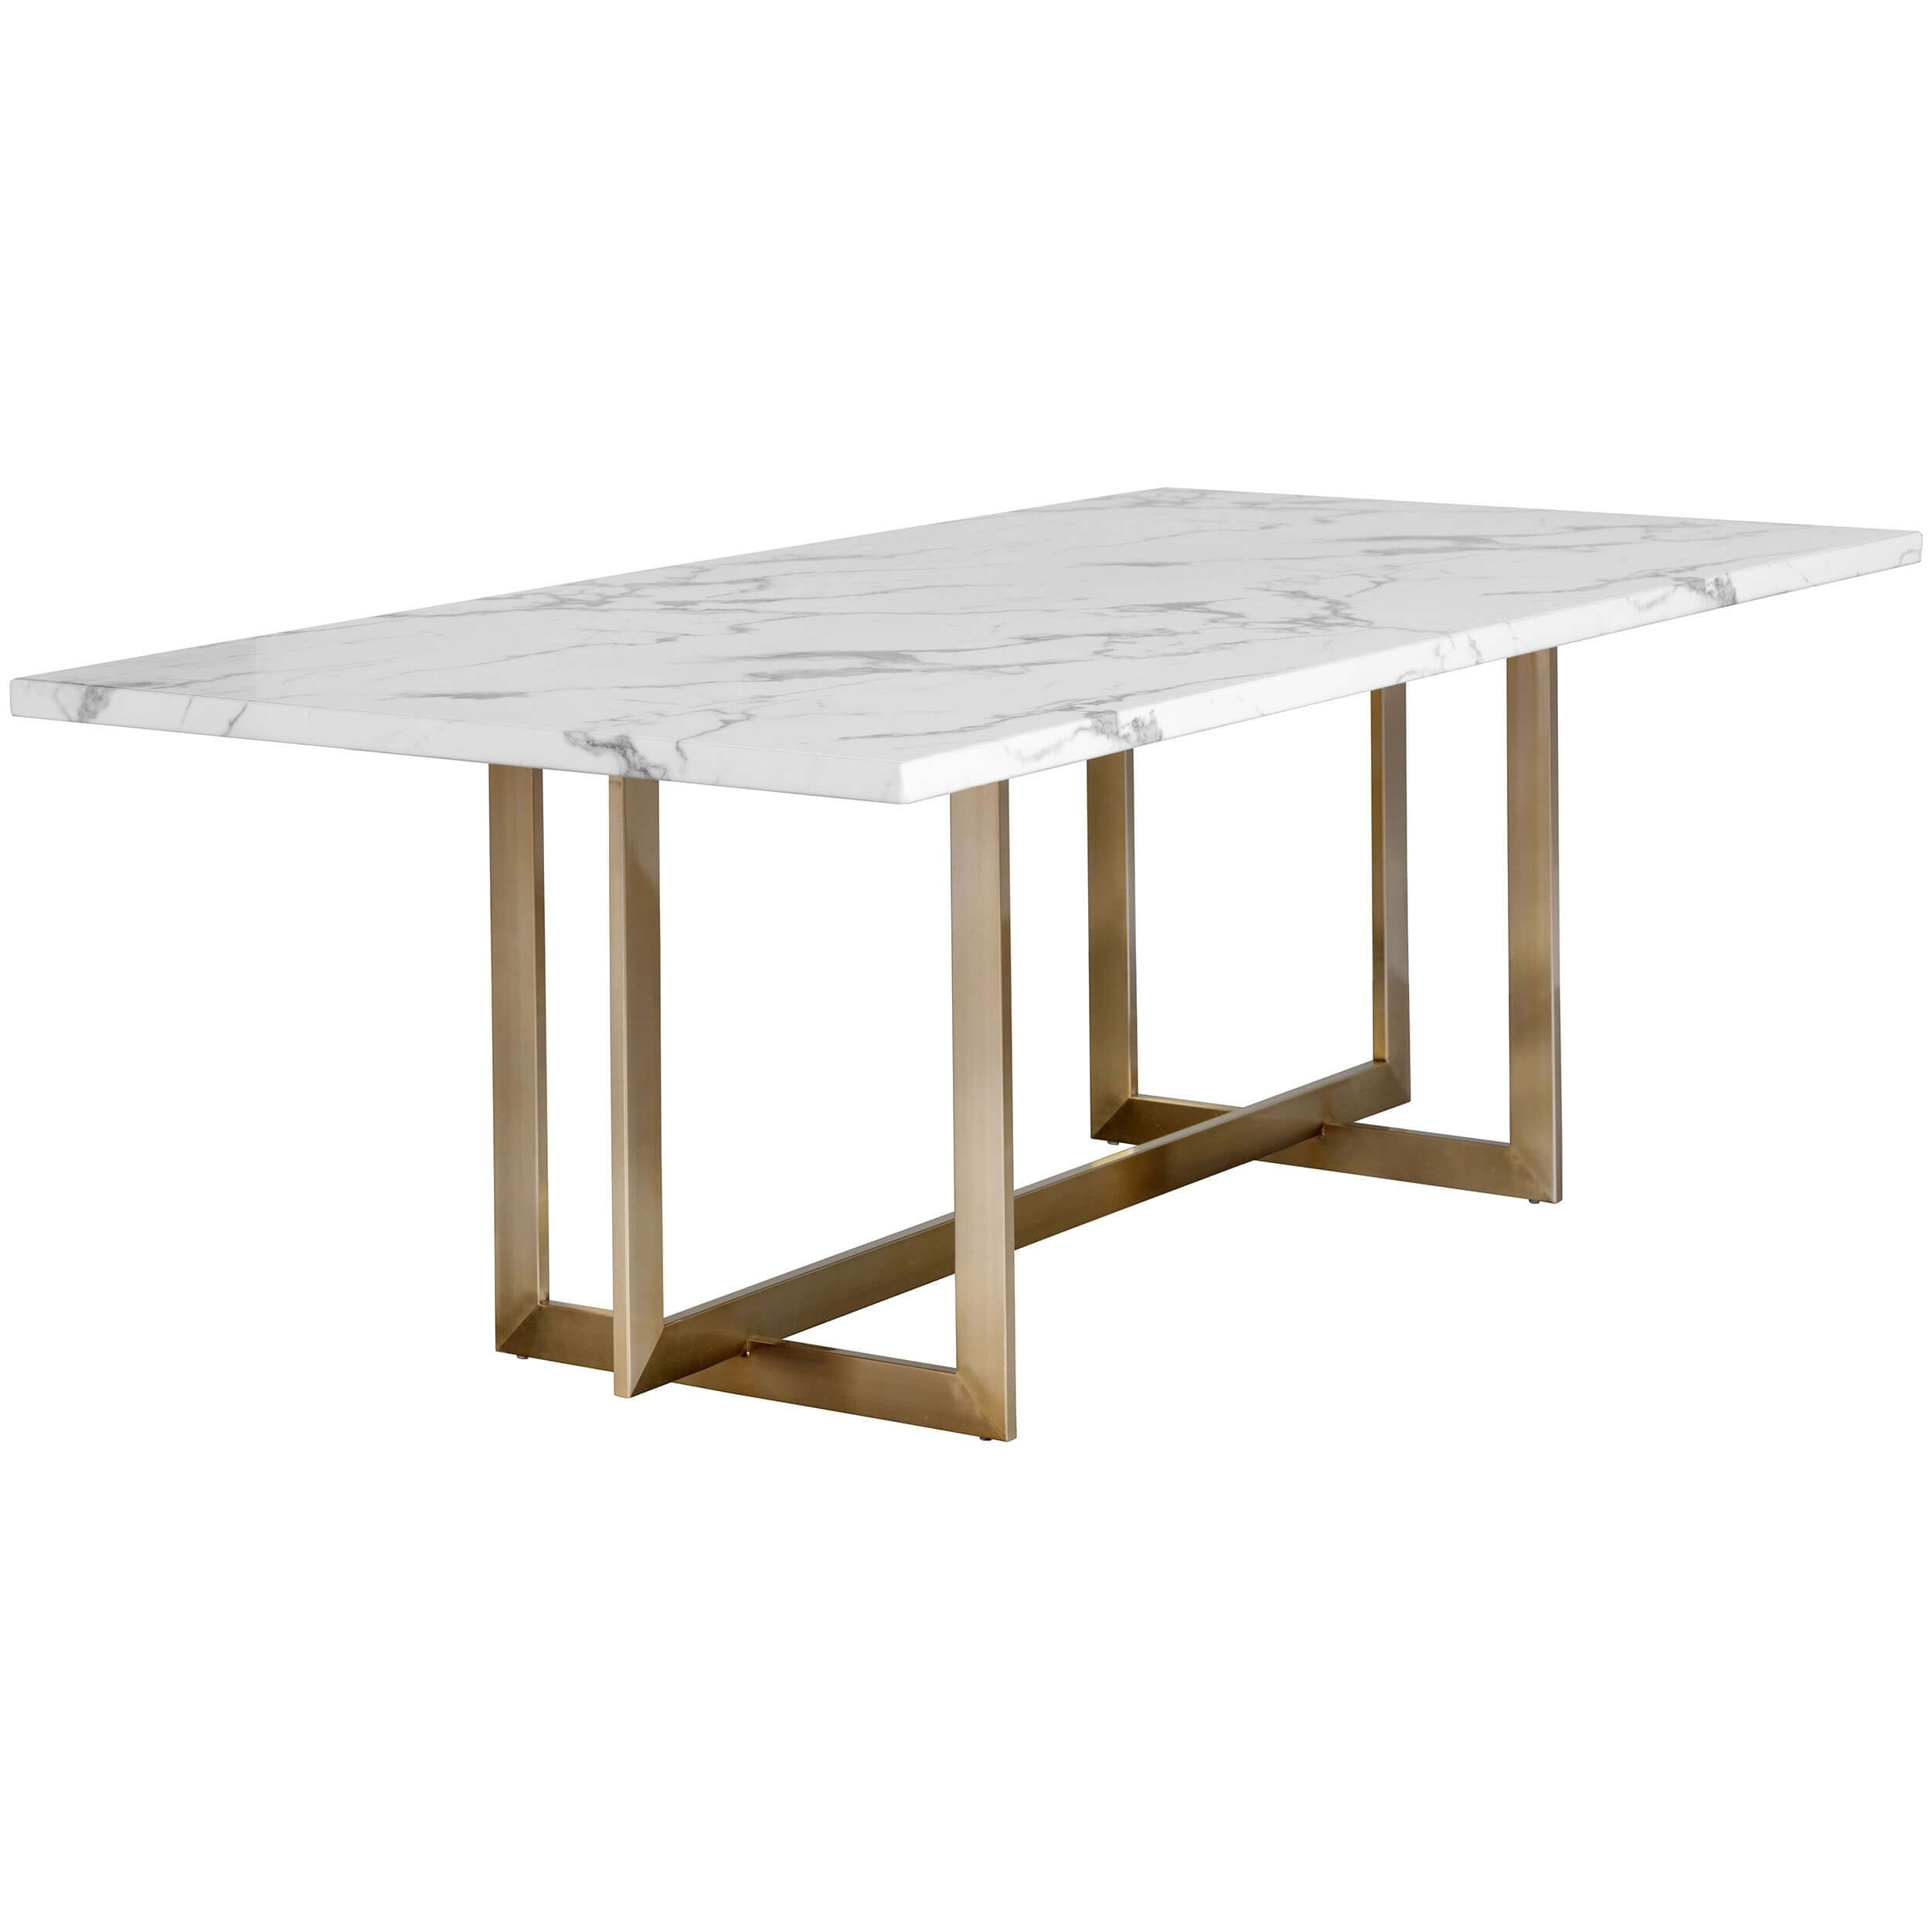 The Rosellen Dining Table Offers A Bold Yet Ele Oval Table Dining Dining Table Marble Marble Dining